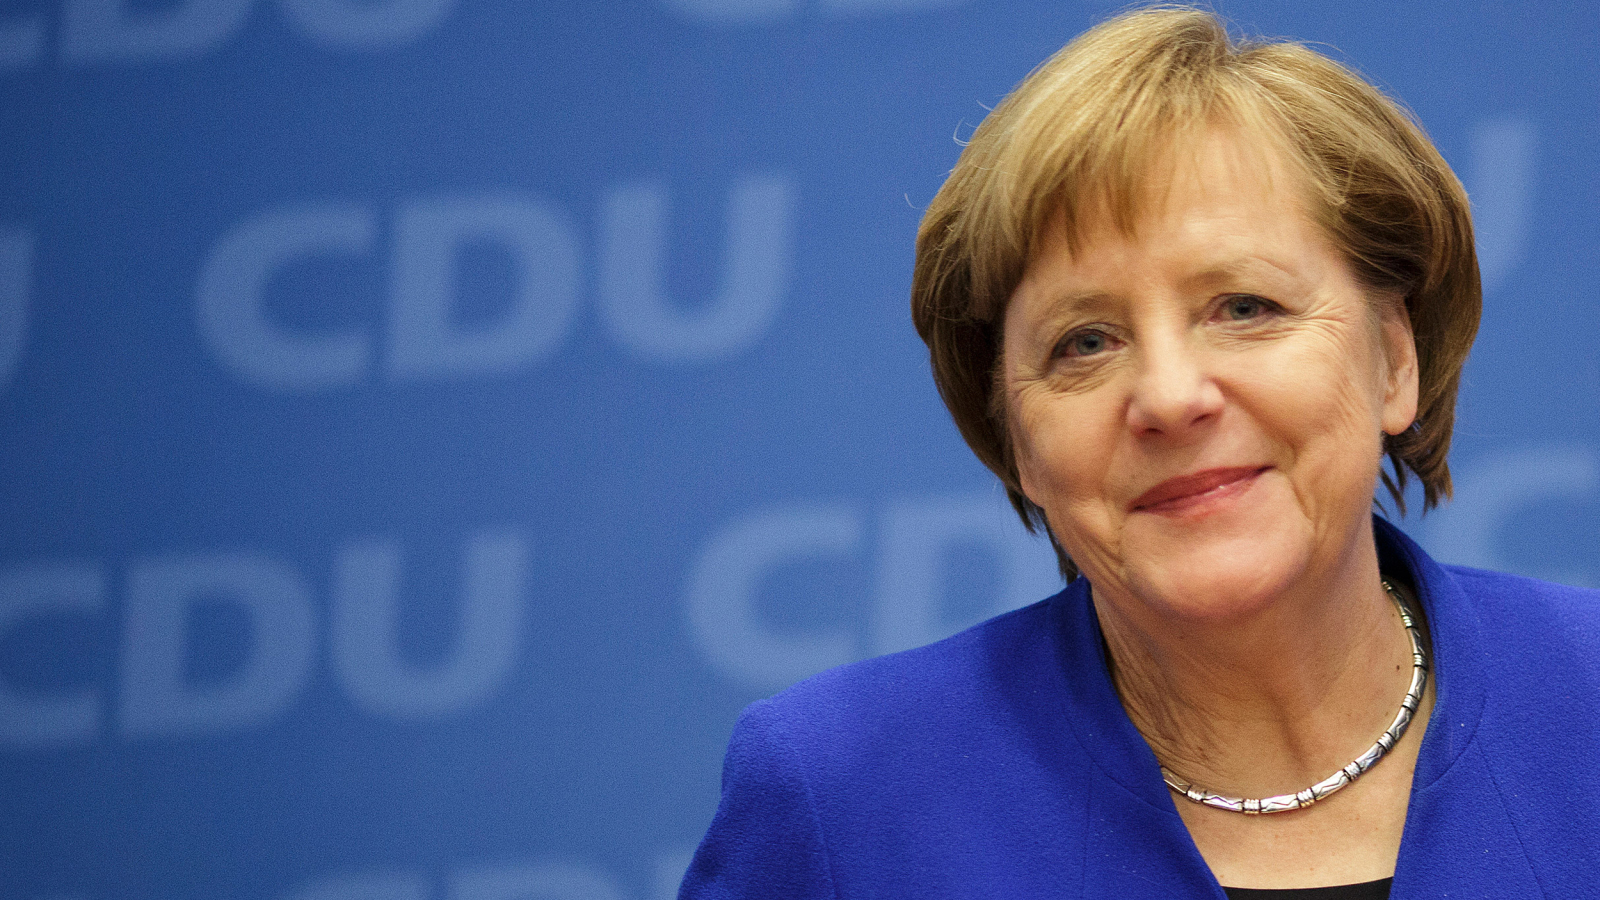 """You cannot fight coronavirus with lies,"" says Angela Merkel"